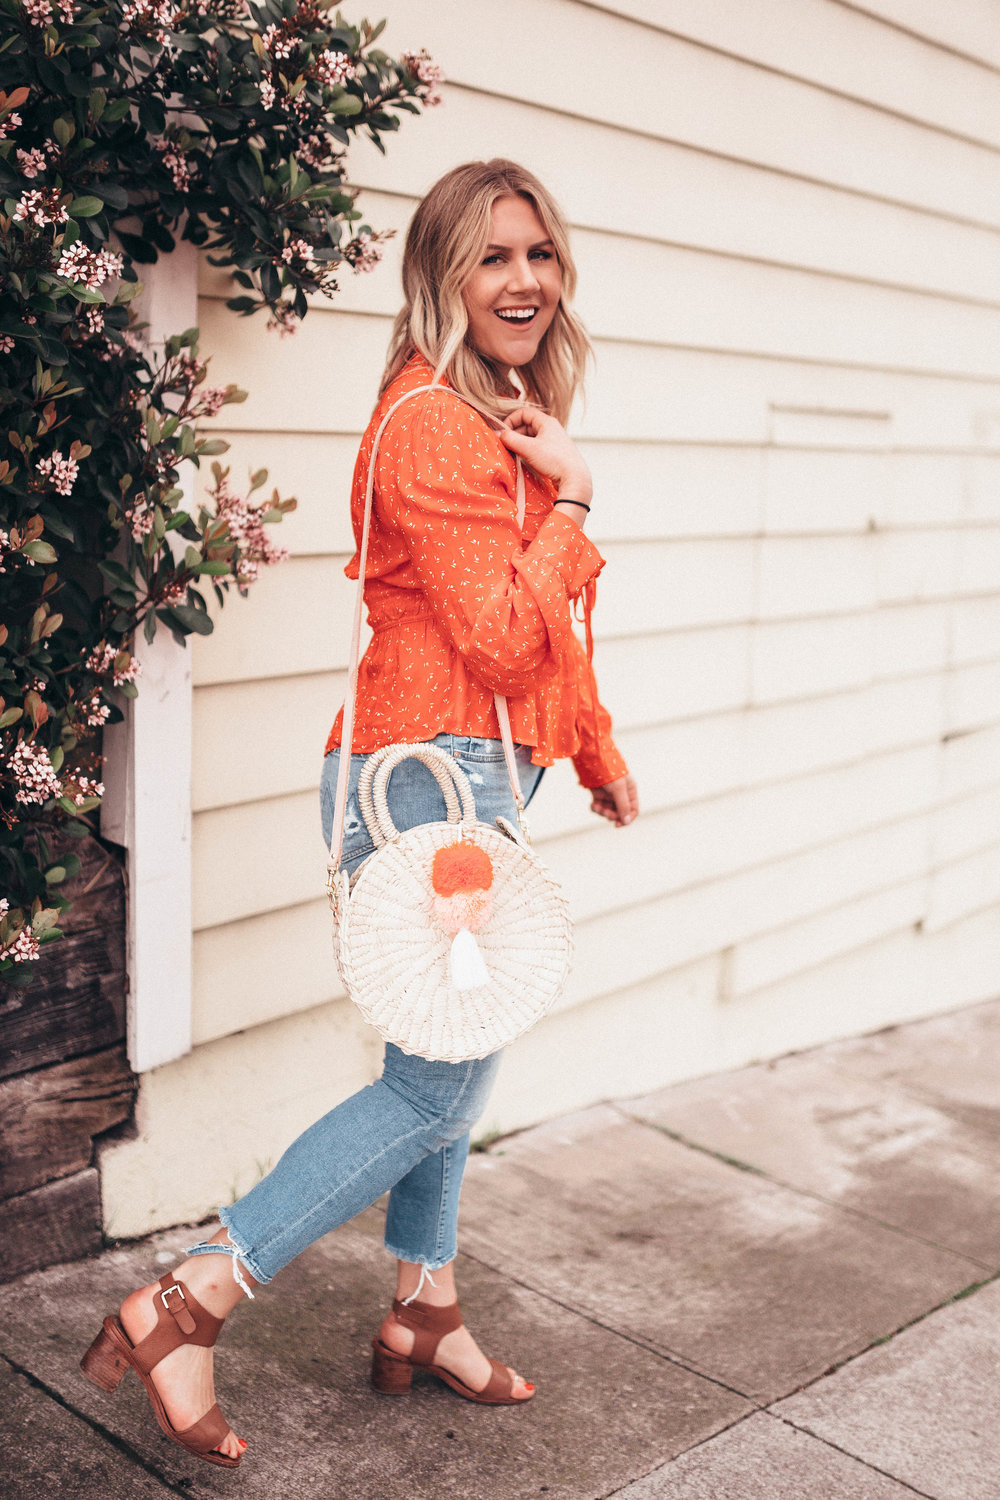 via Thea: Free People Top and Nomah Project bag